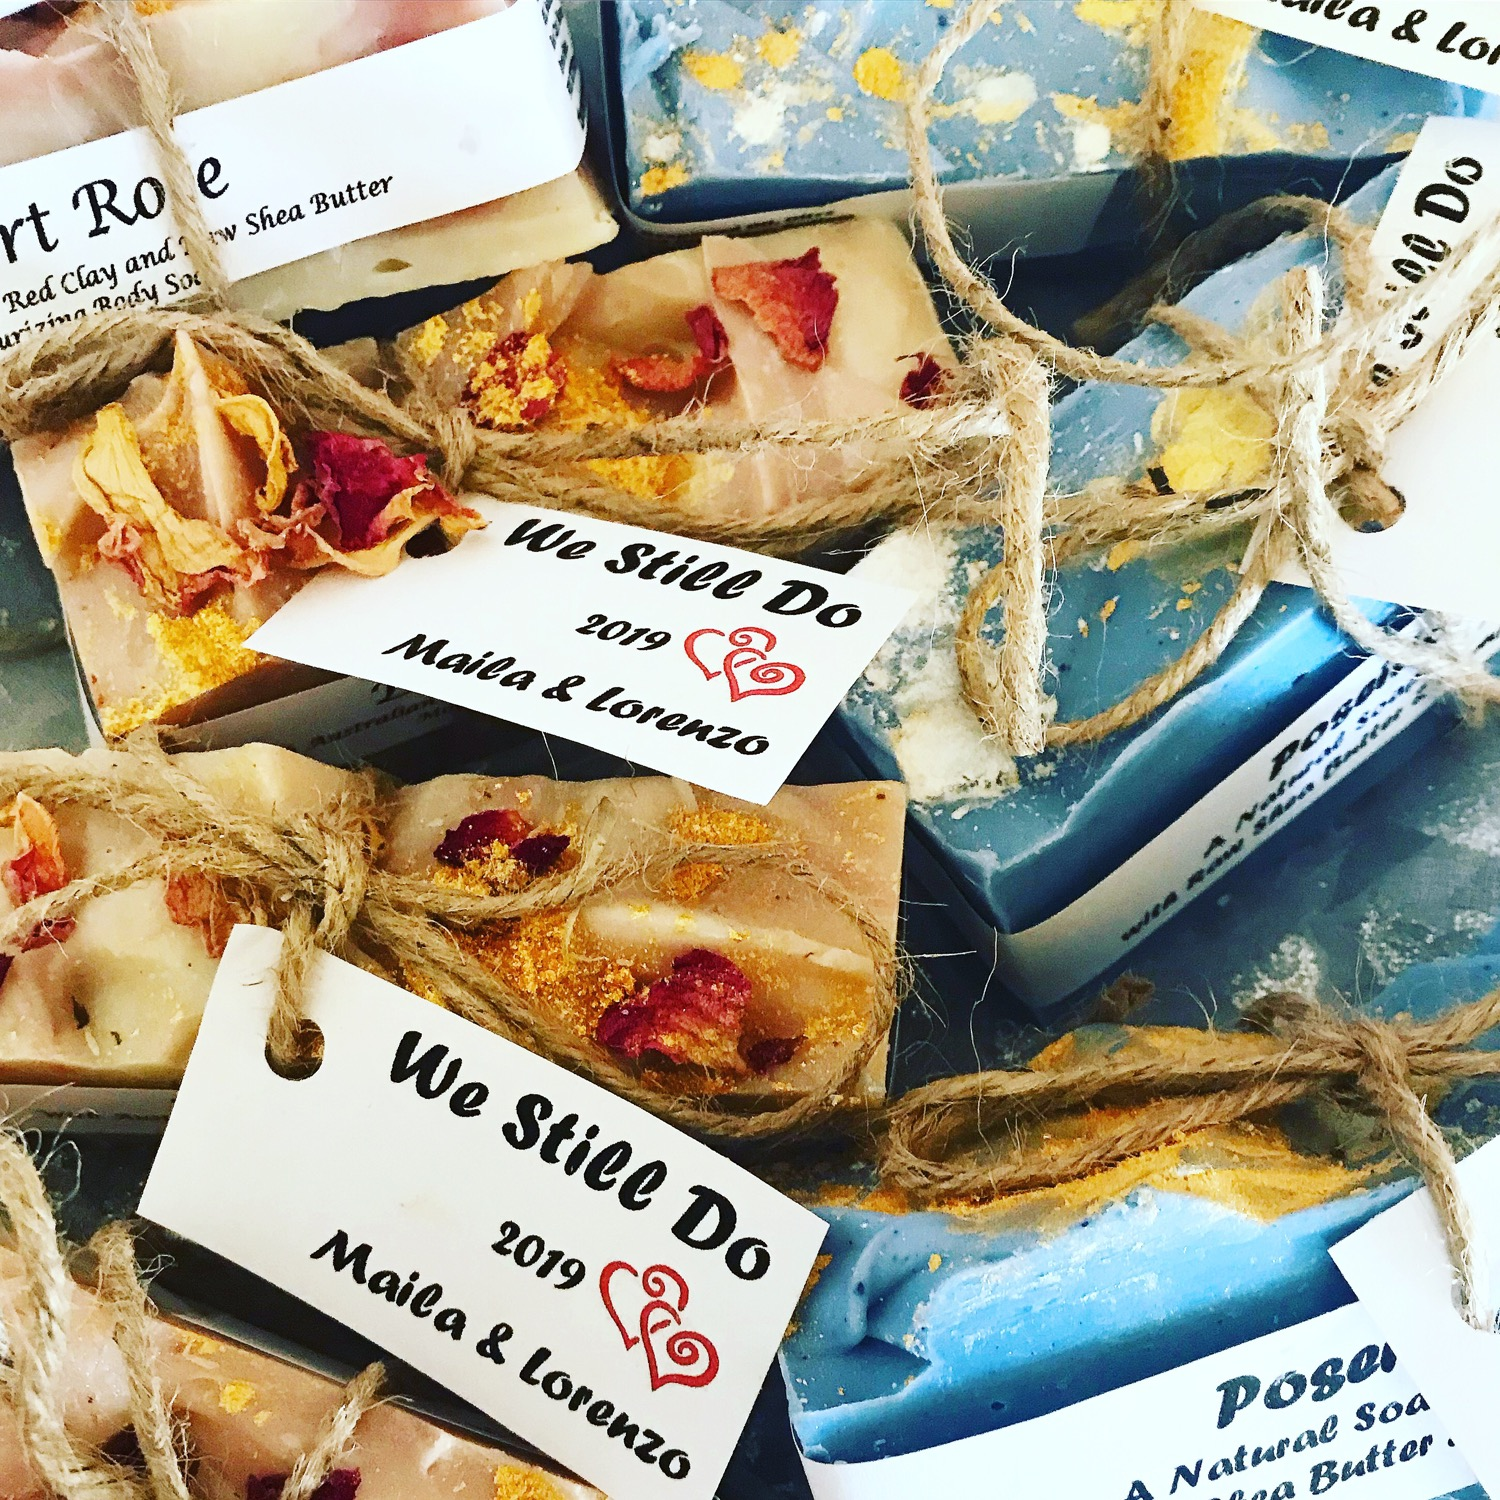 We Still Do (custom his & her party soap